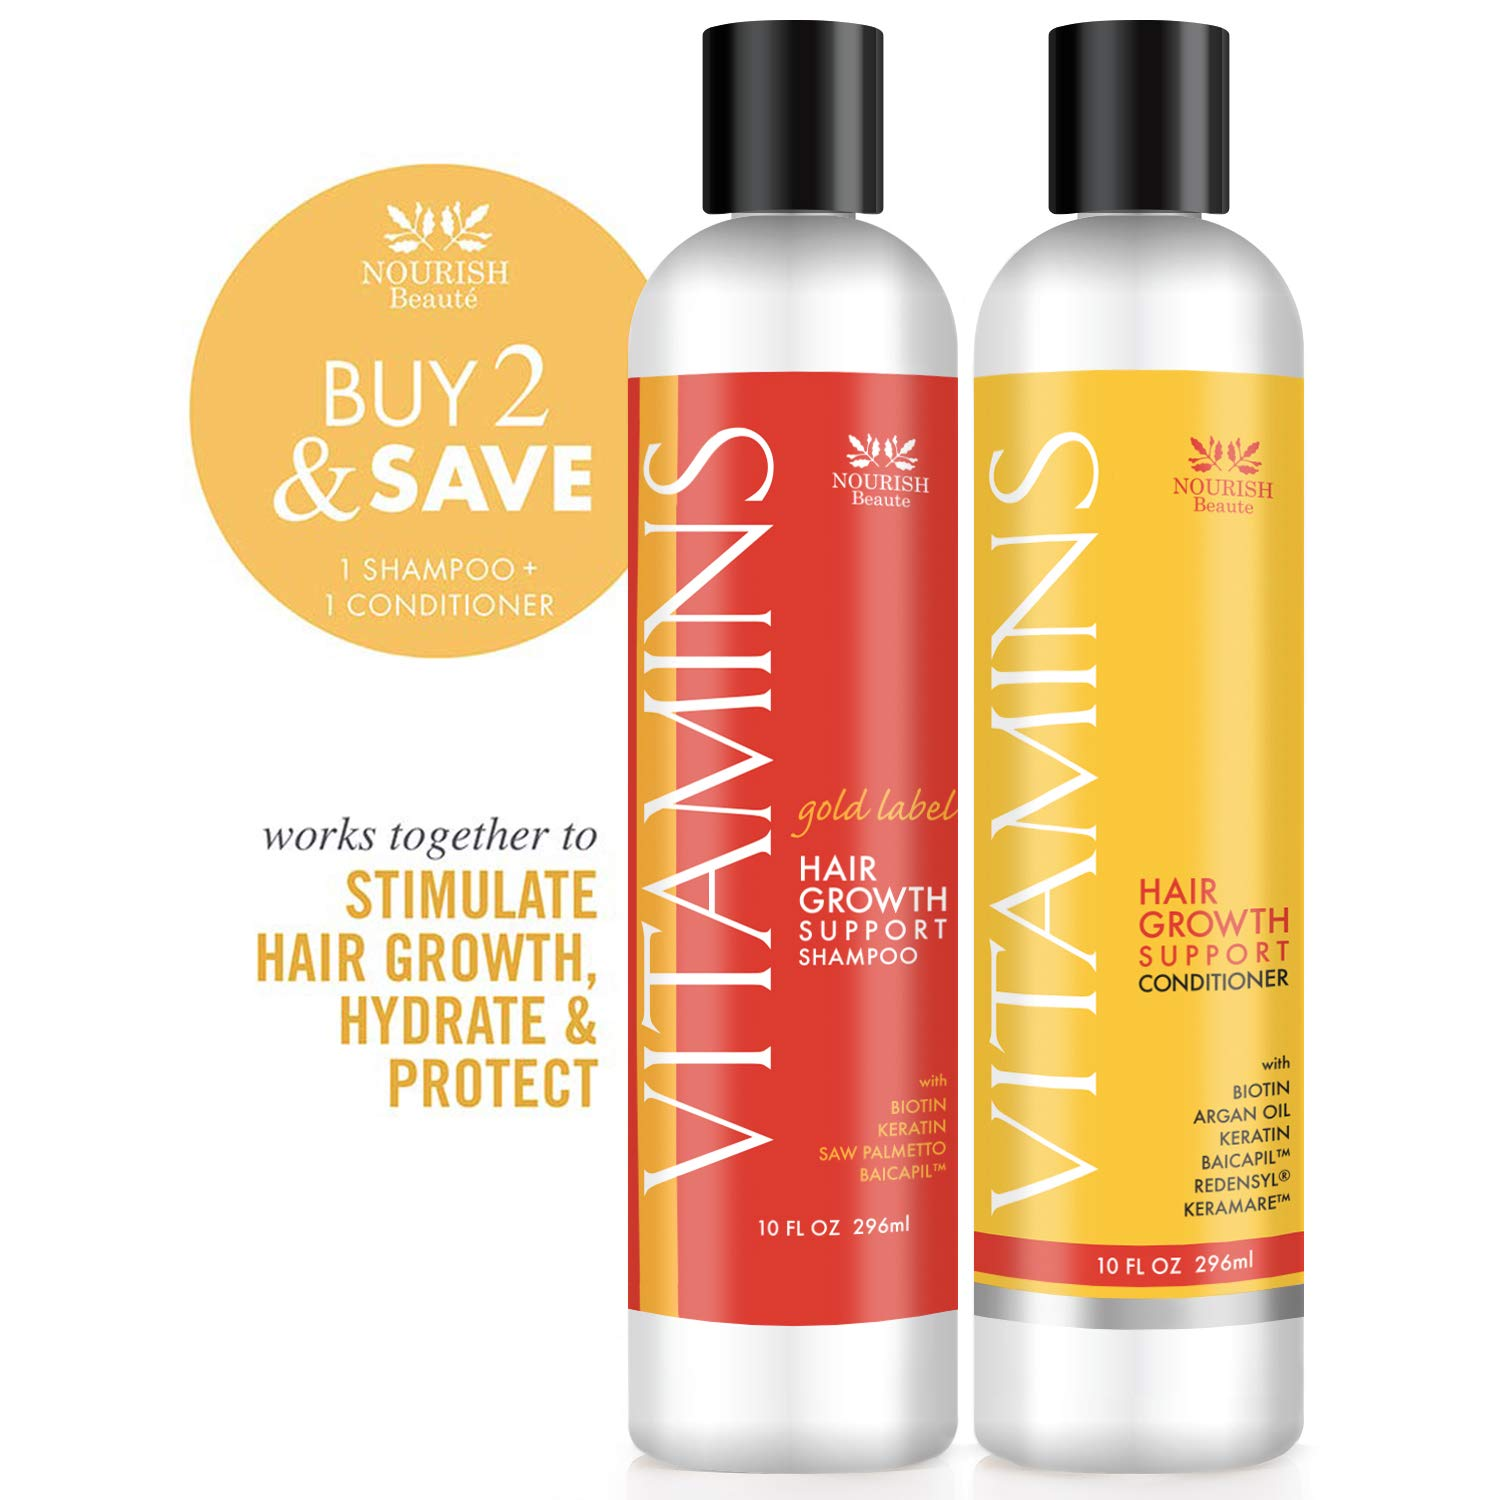 Nourish Beaute Vitamins Premium Shampoo and Conditioner for Hair Loss that Promotes Hair Regrowth For Men and Women, 1 10 Ounce by Nourish Beaute